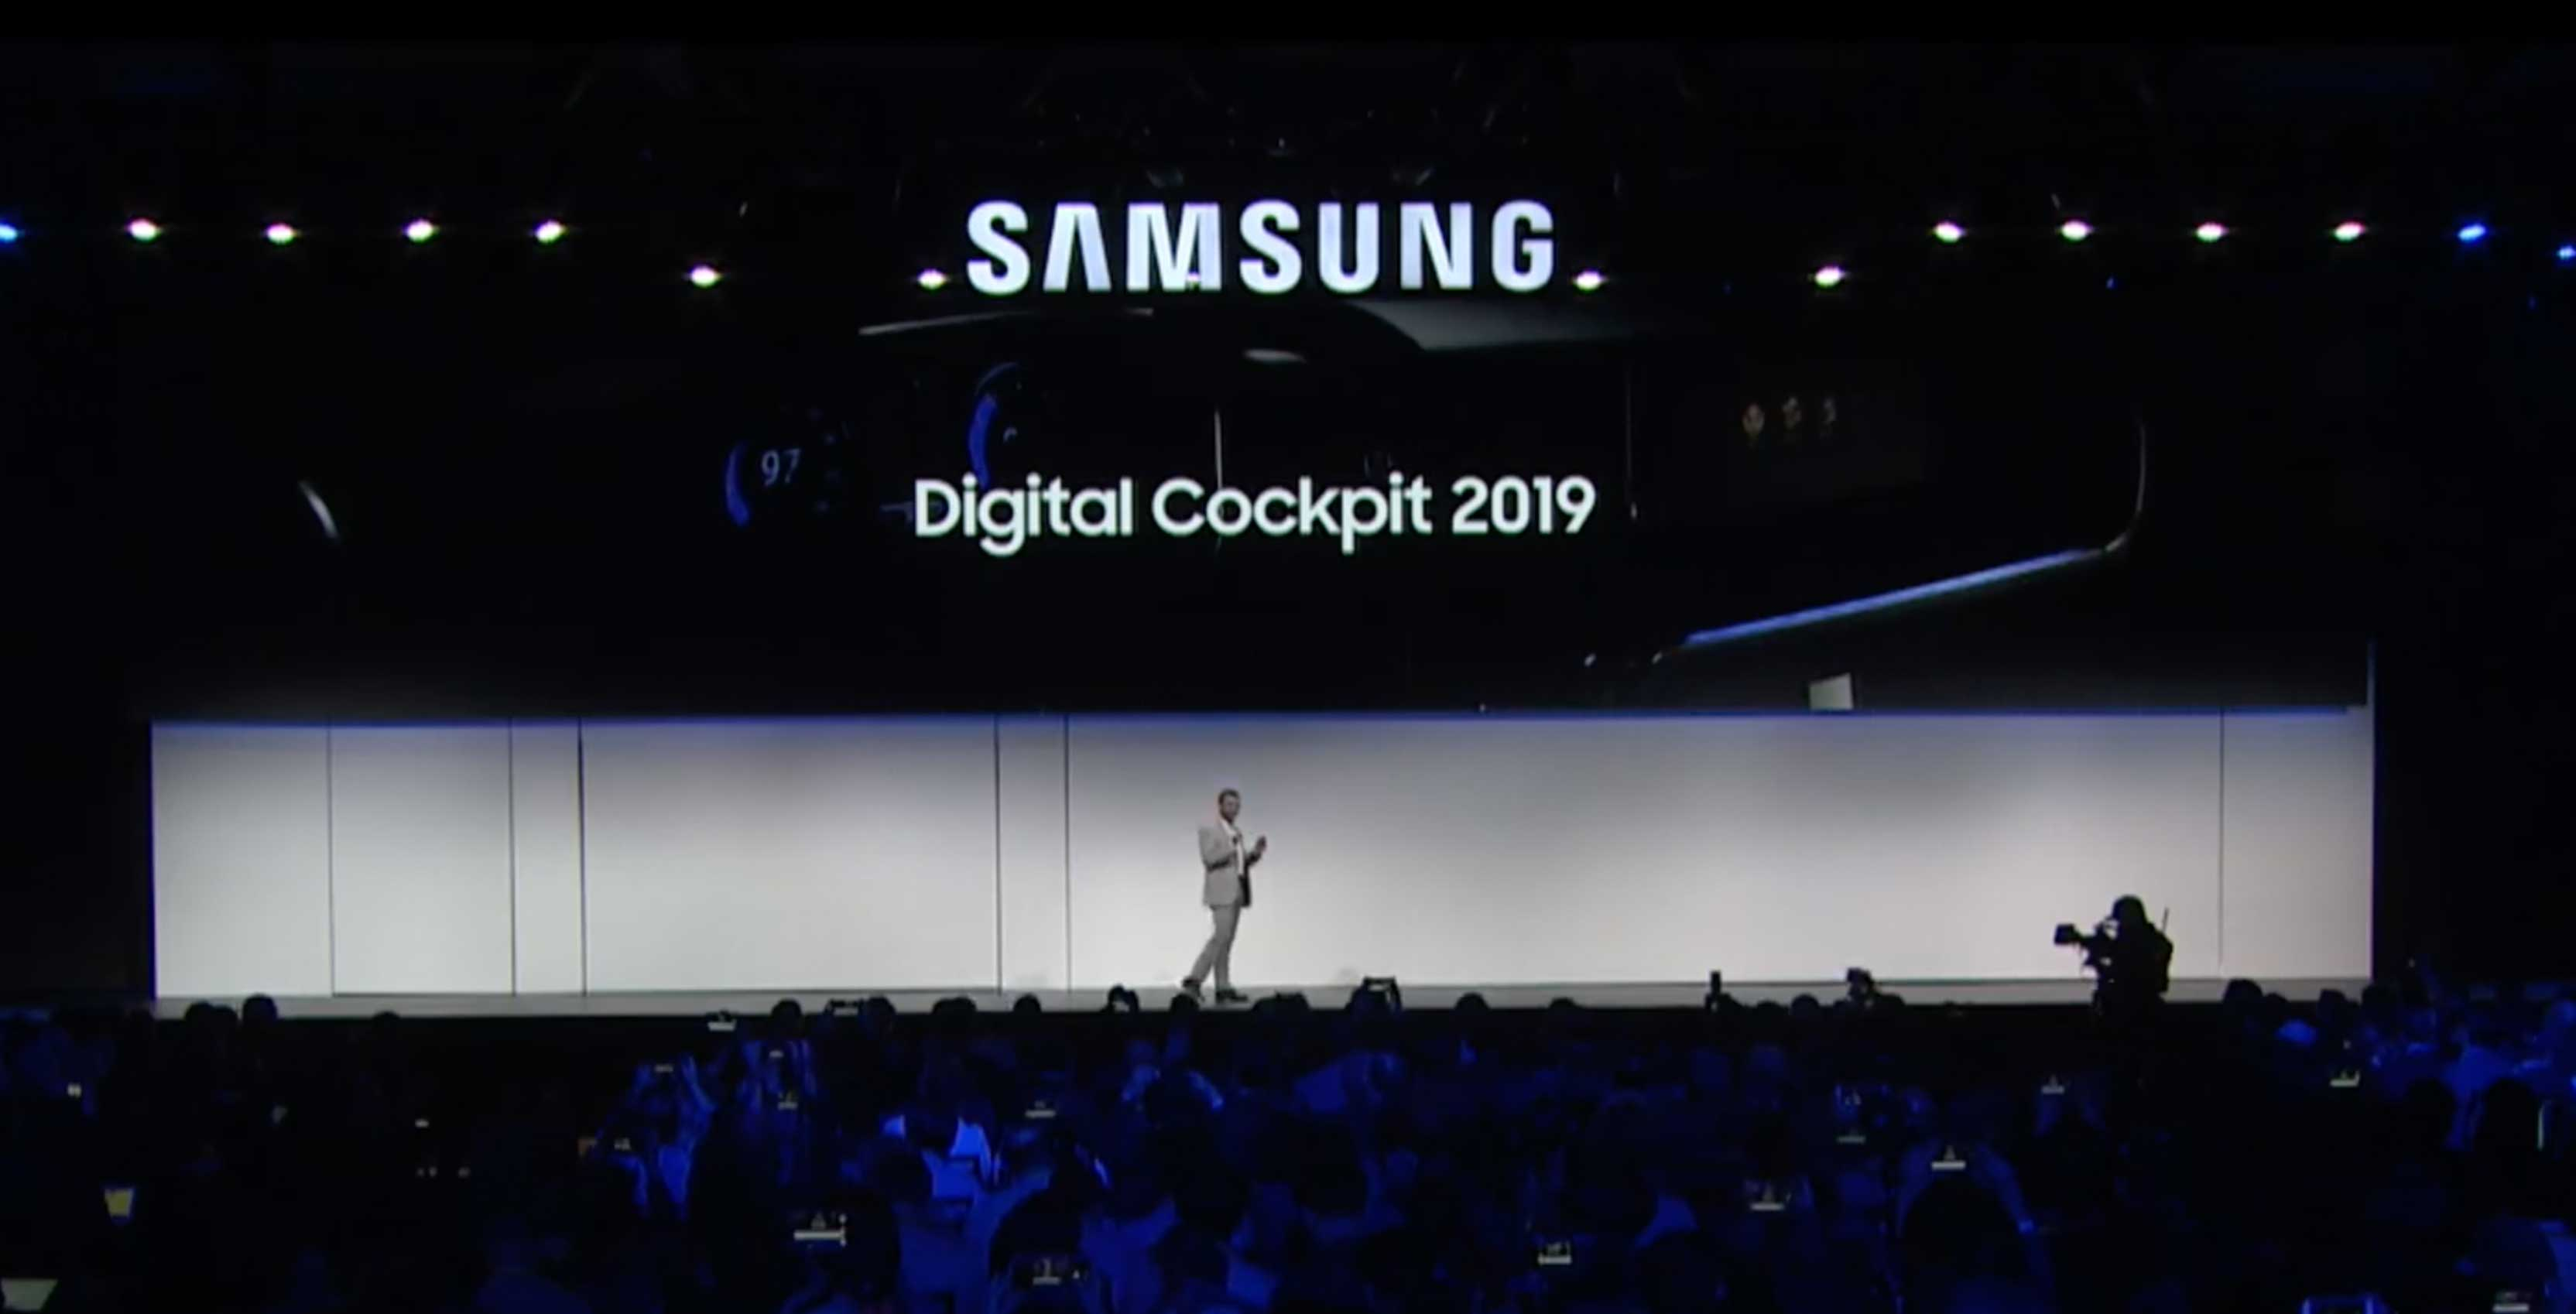 Samsung Steals the Show with Impressive Announcements